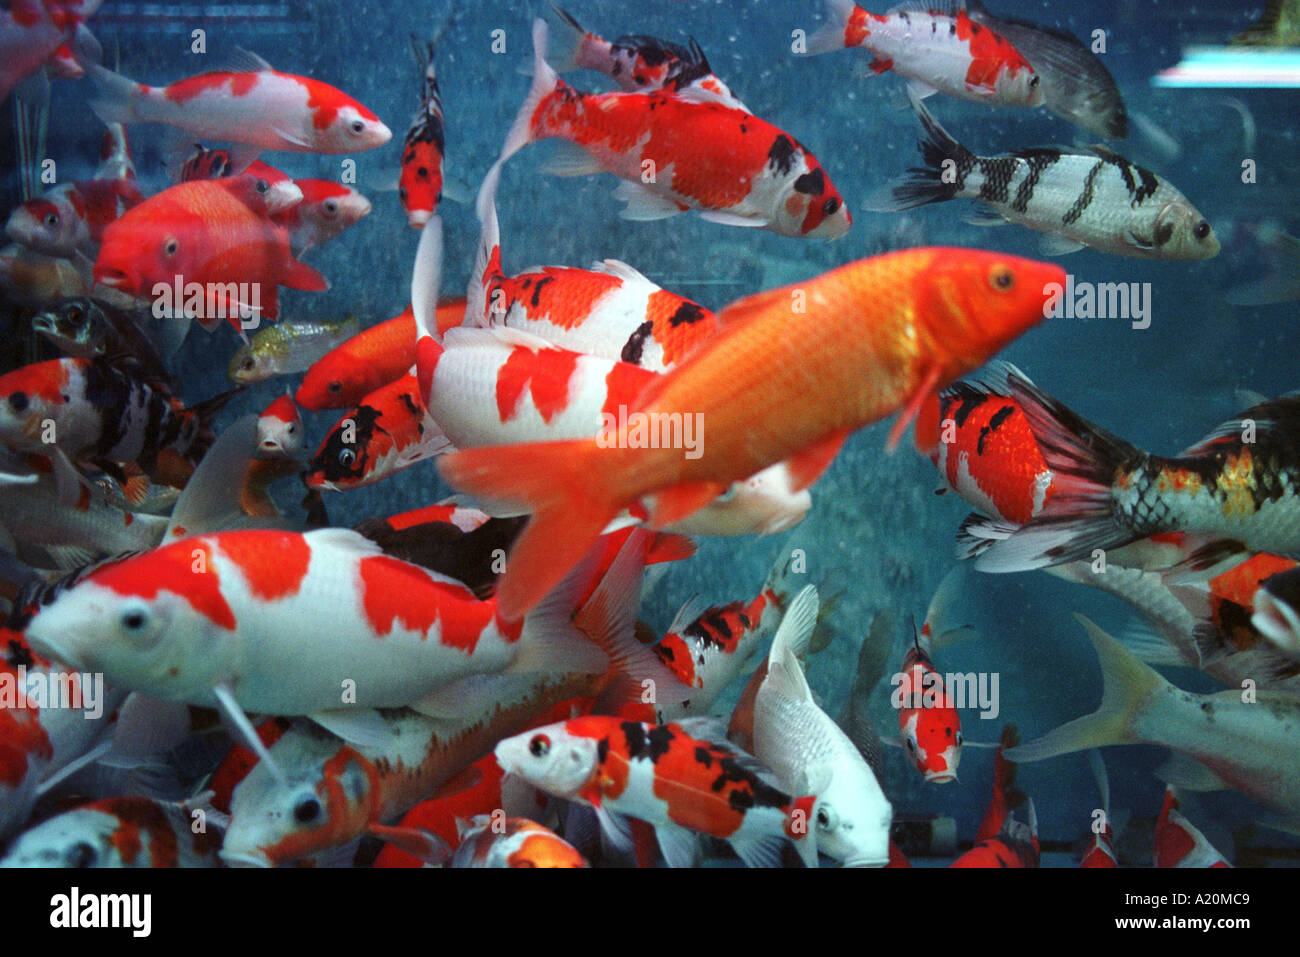 Koi carp fish charms of financial prosperity for sale in Koi carp food for sale